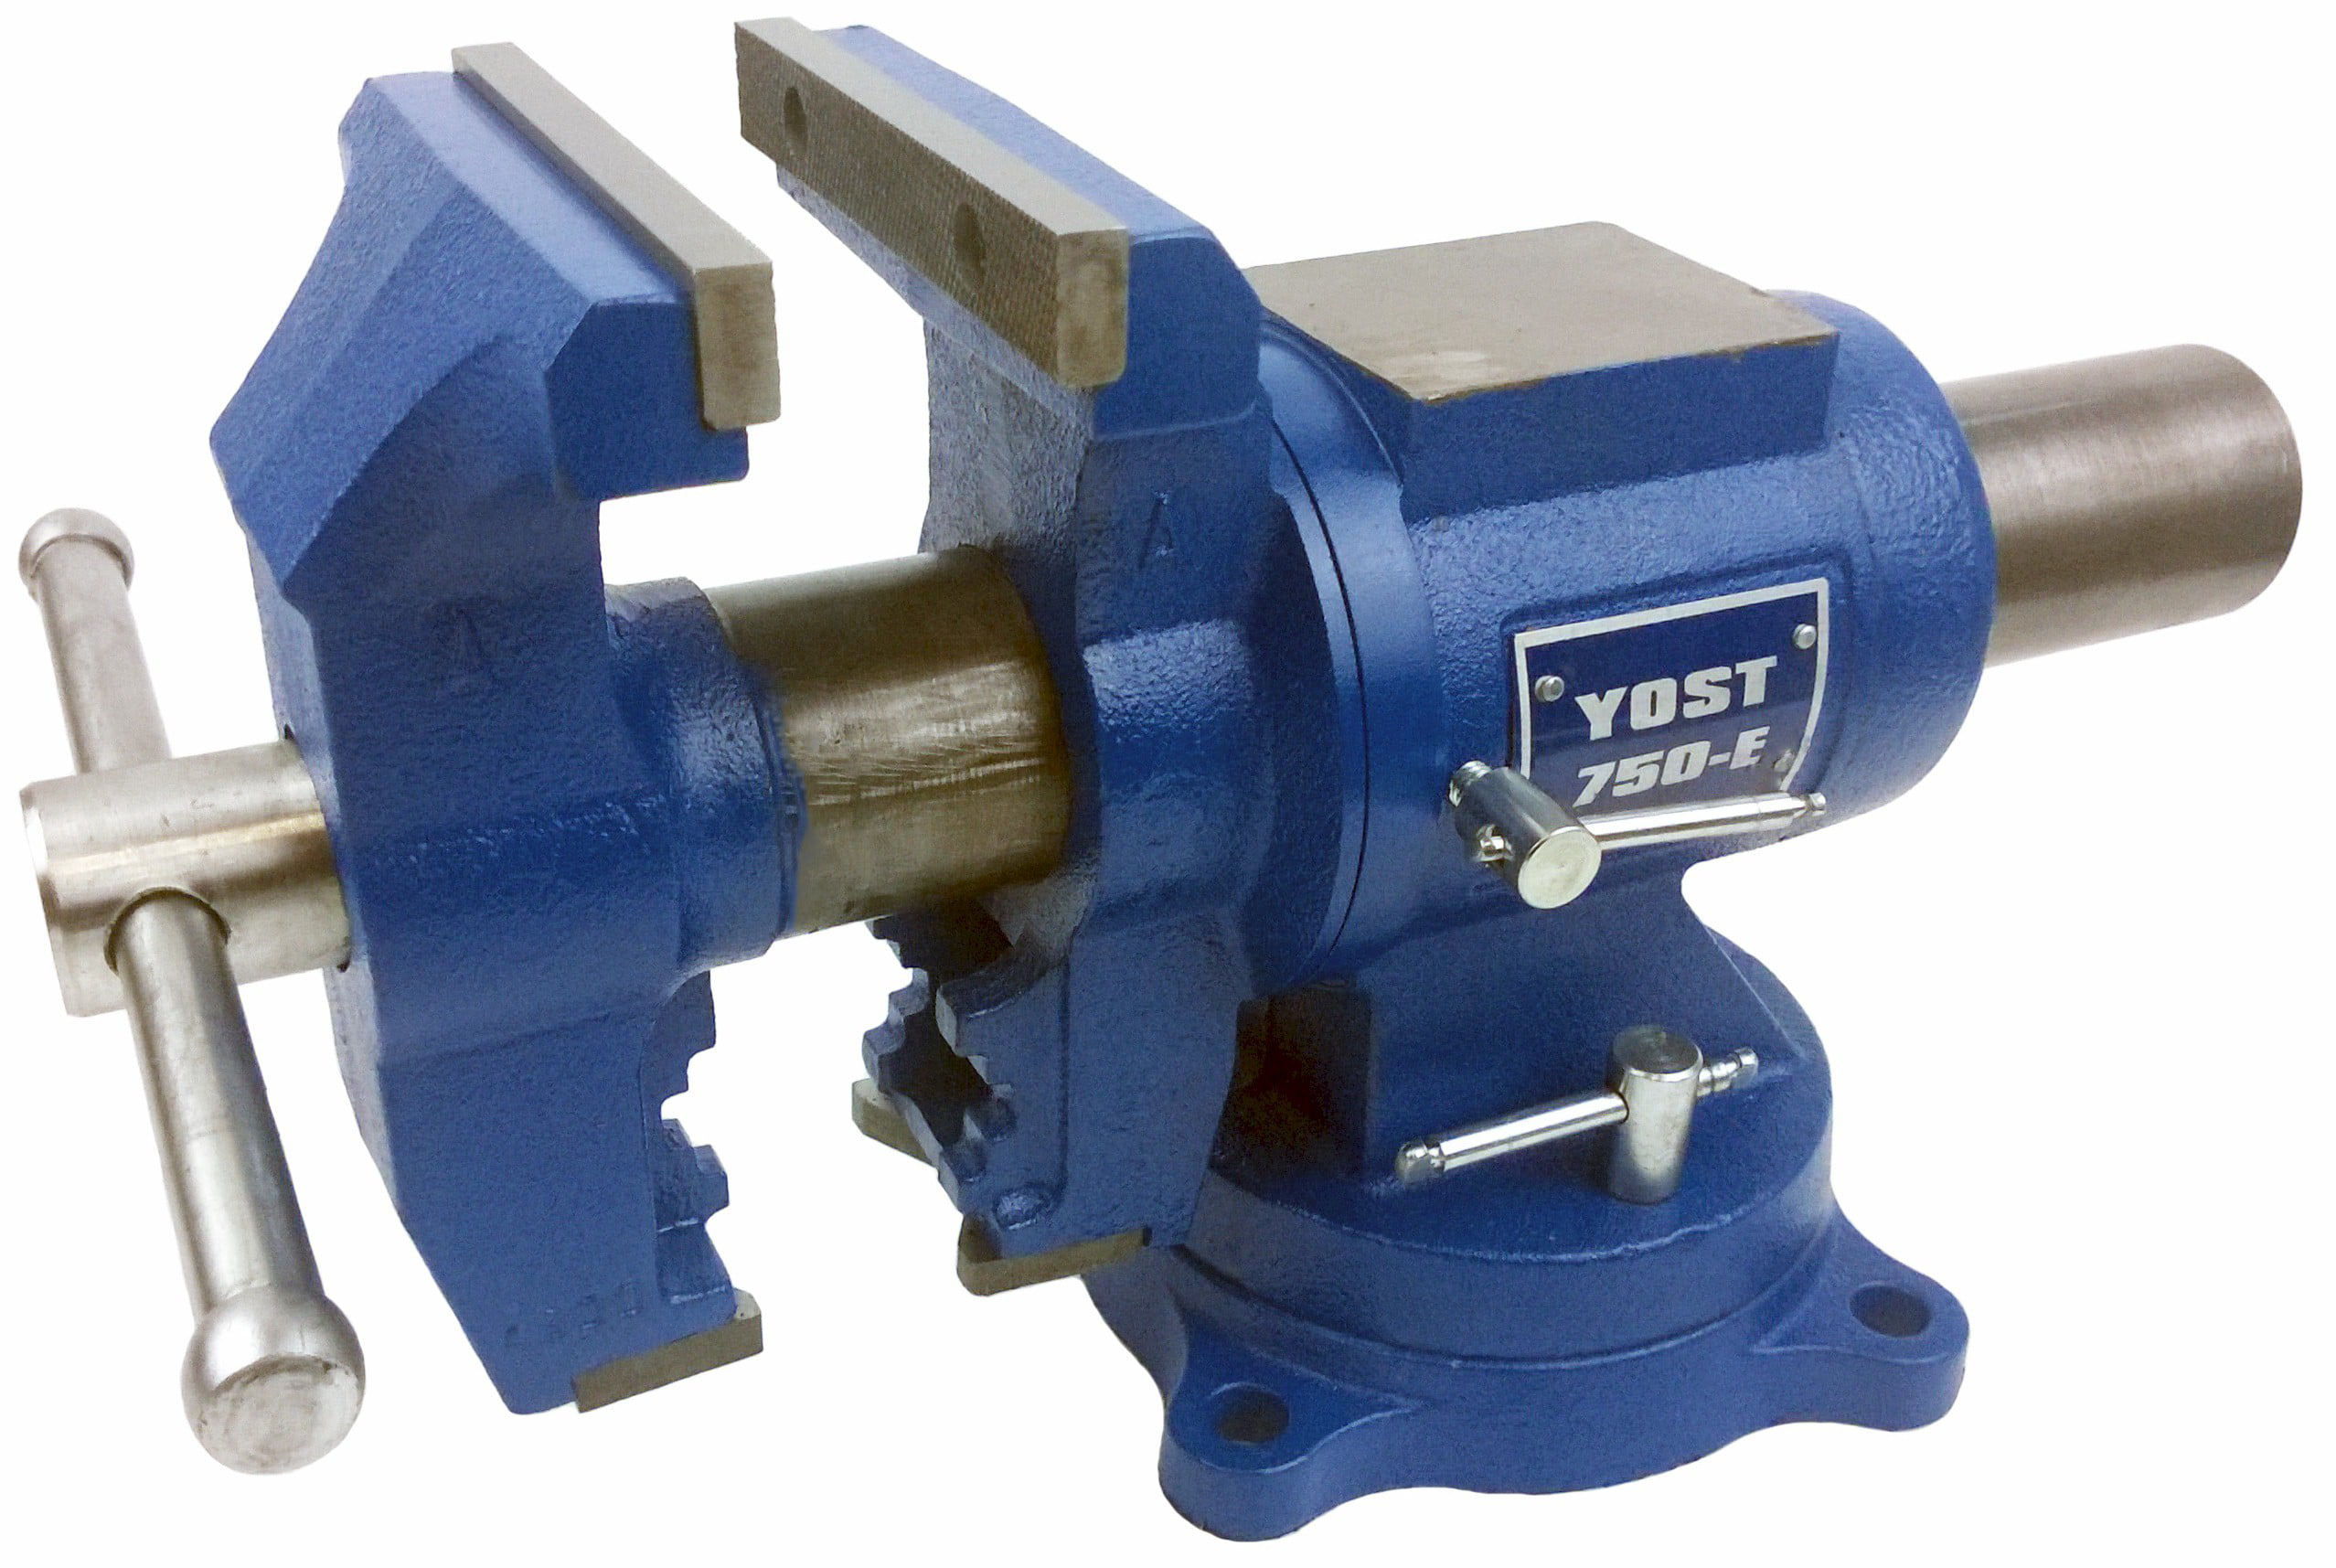 Yost 750-E Rotating Bench Vise by Yost